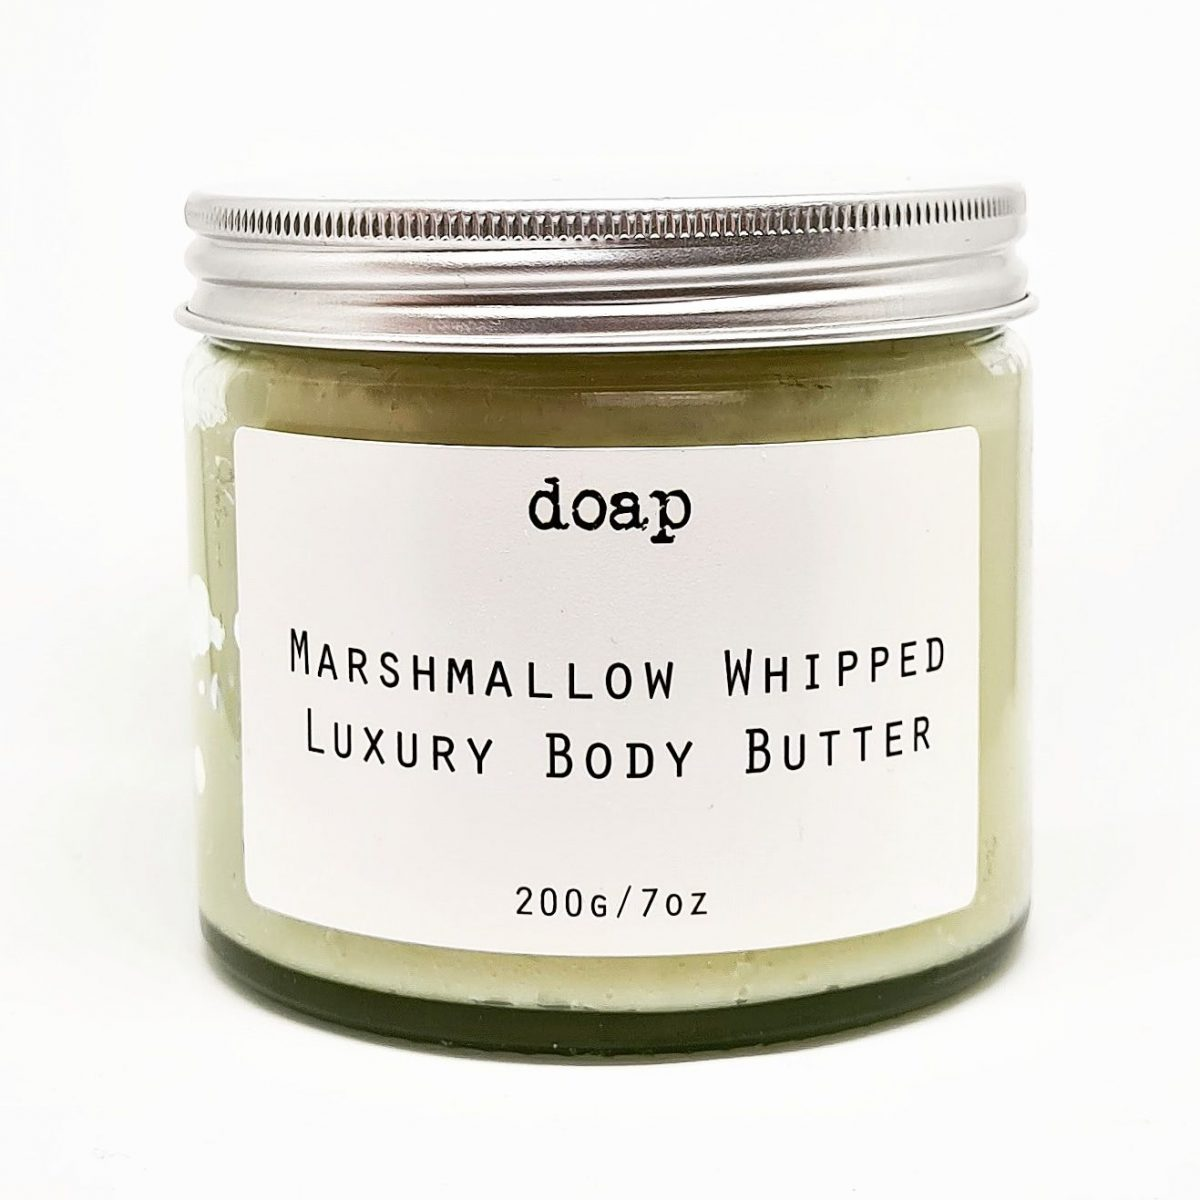 DOAP Whipped Marshmallow Luxury Body Butter 200g